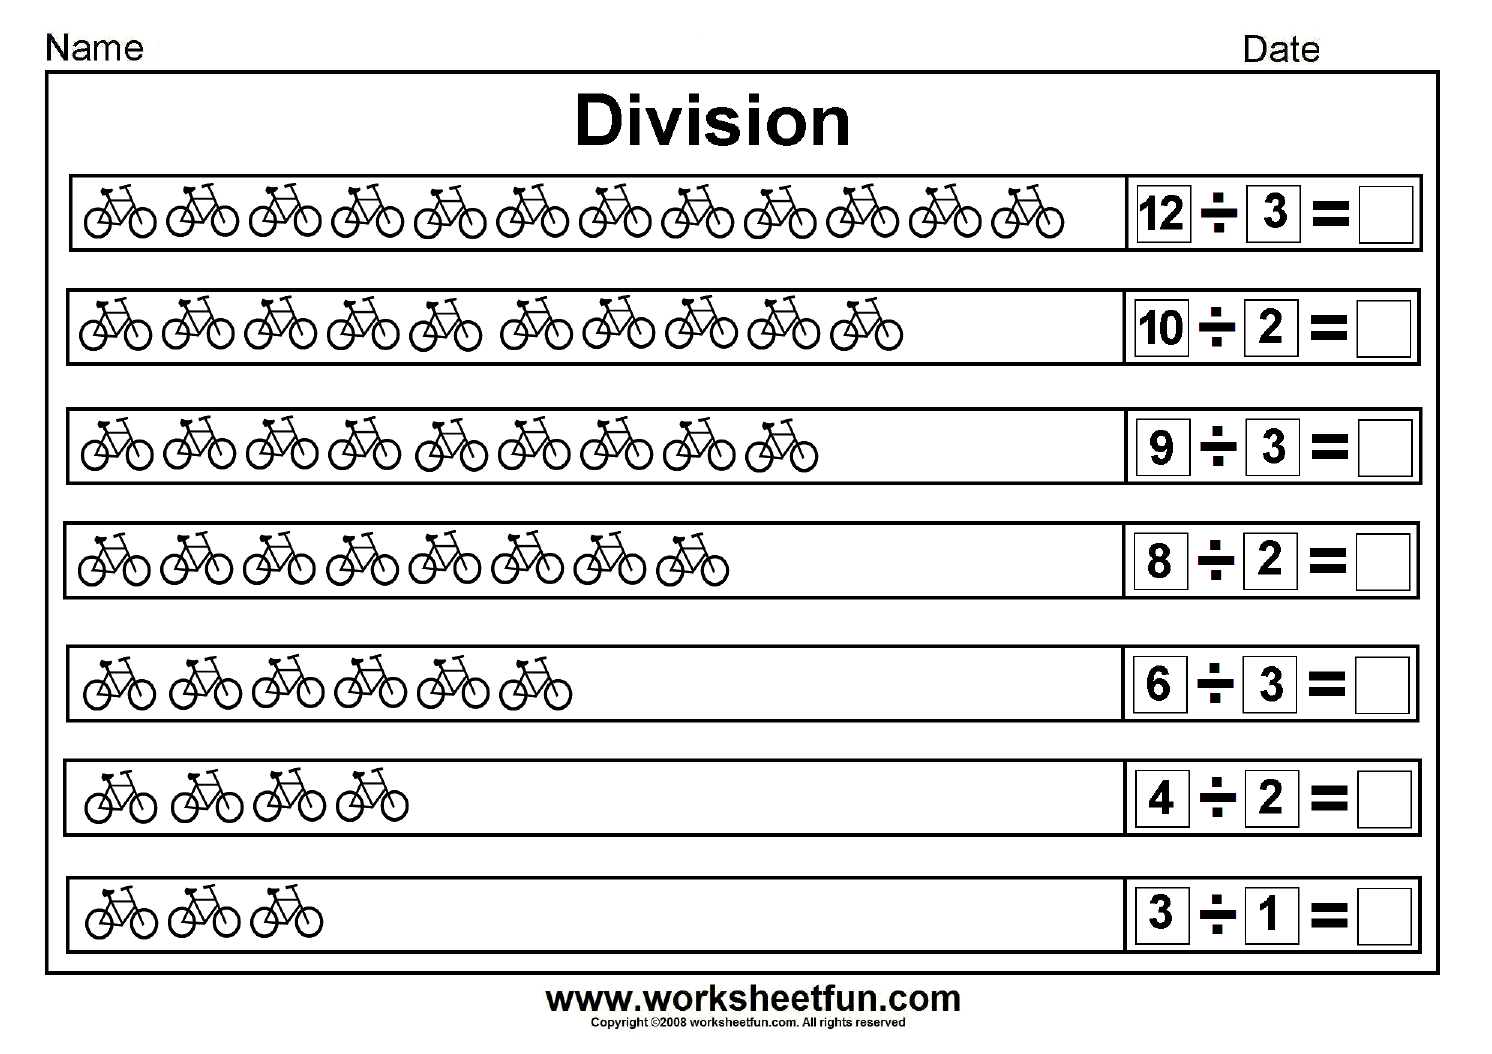 Division Sharing Equally Picture Division 14